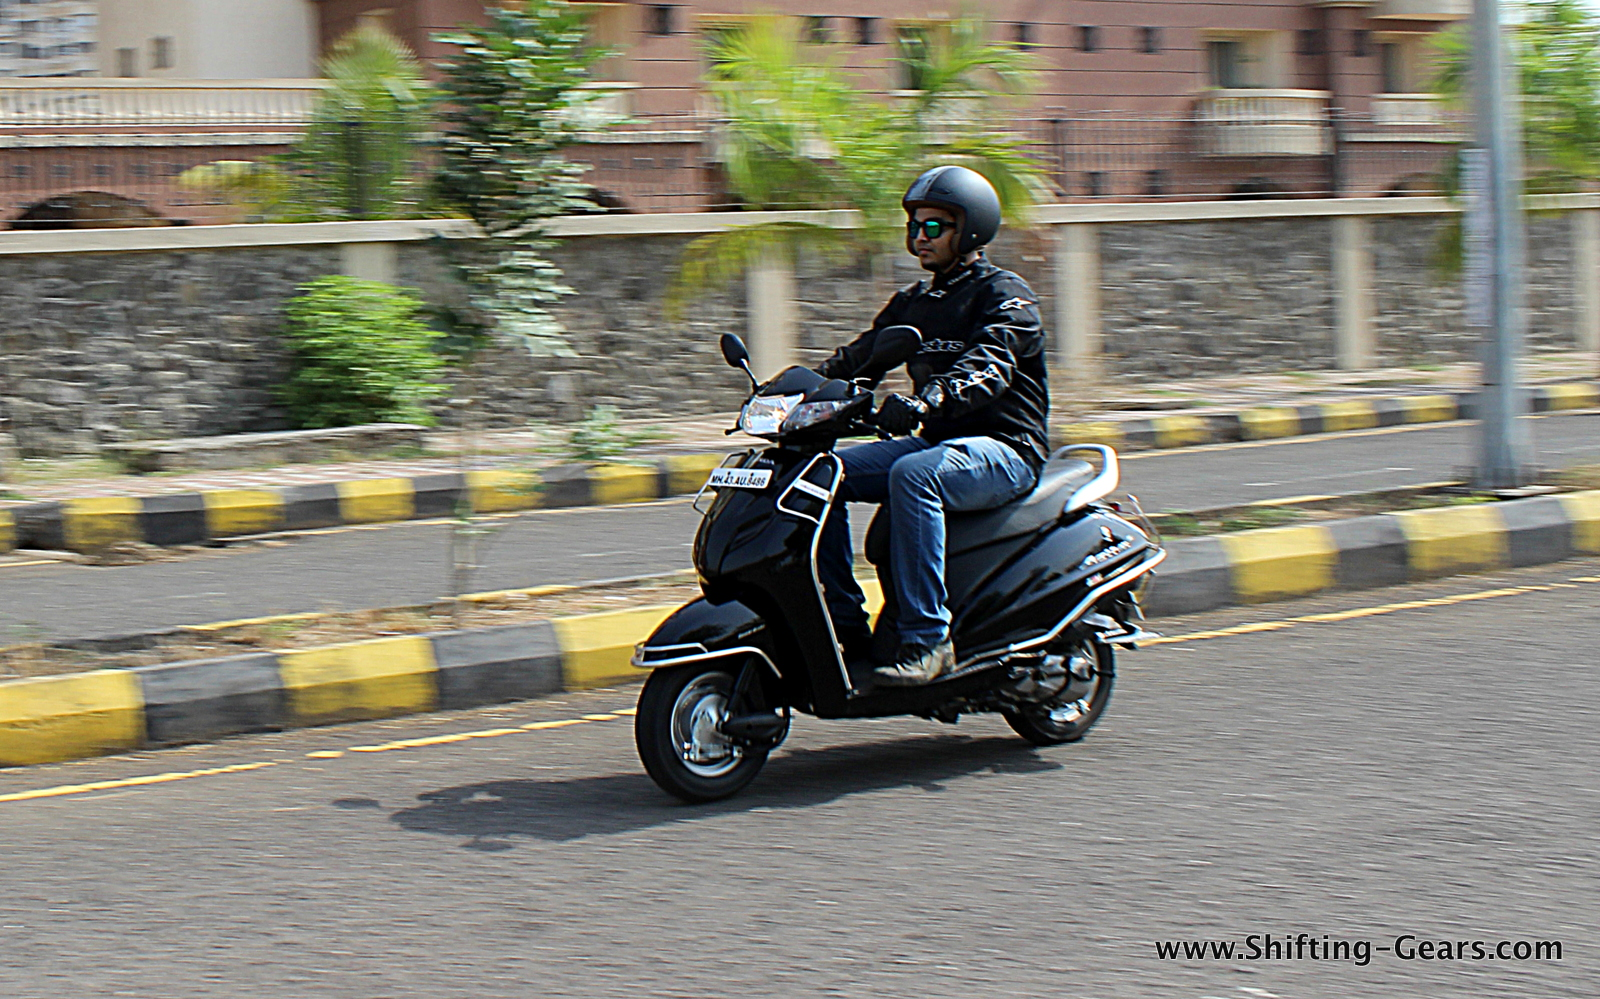 hmsi-honda-activa-3g-scooter-review-01